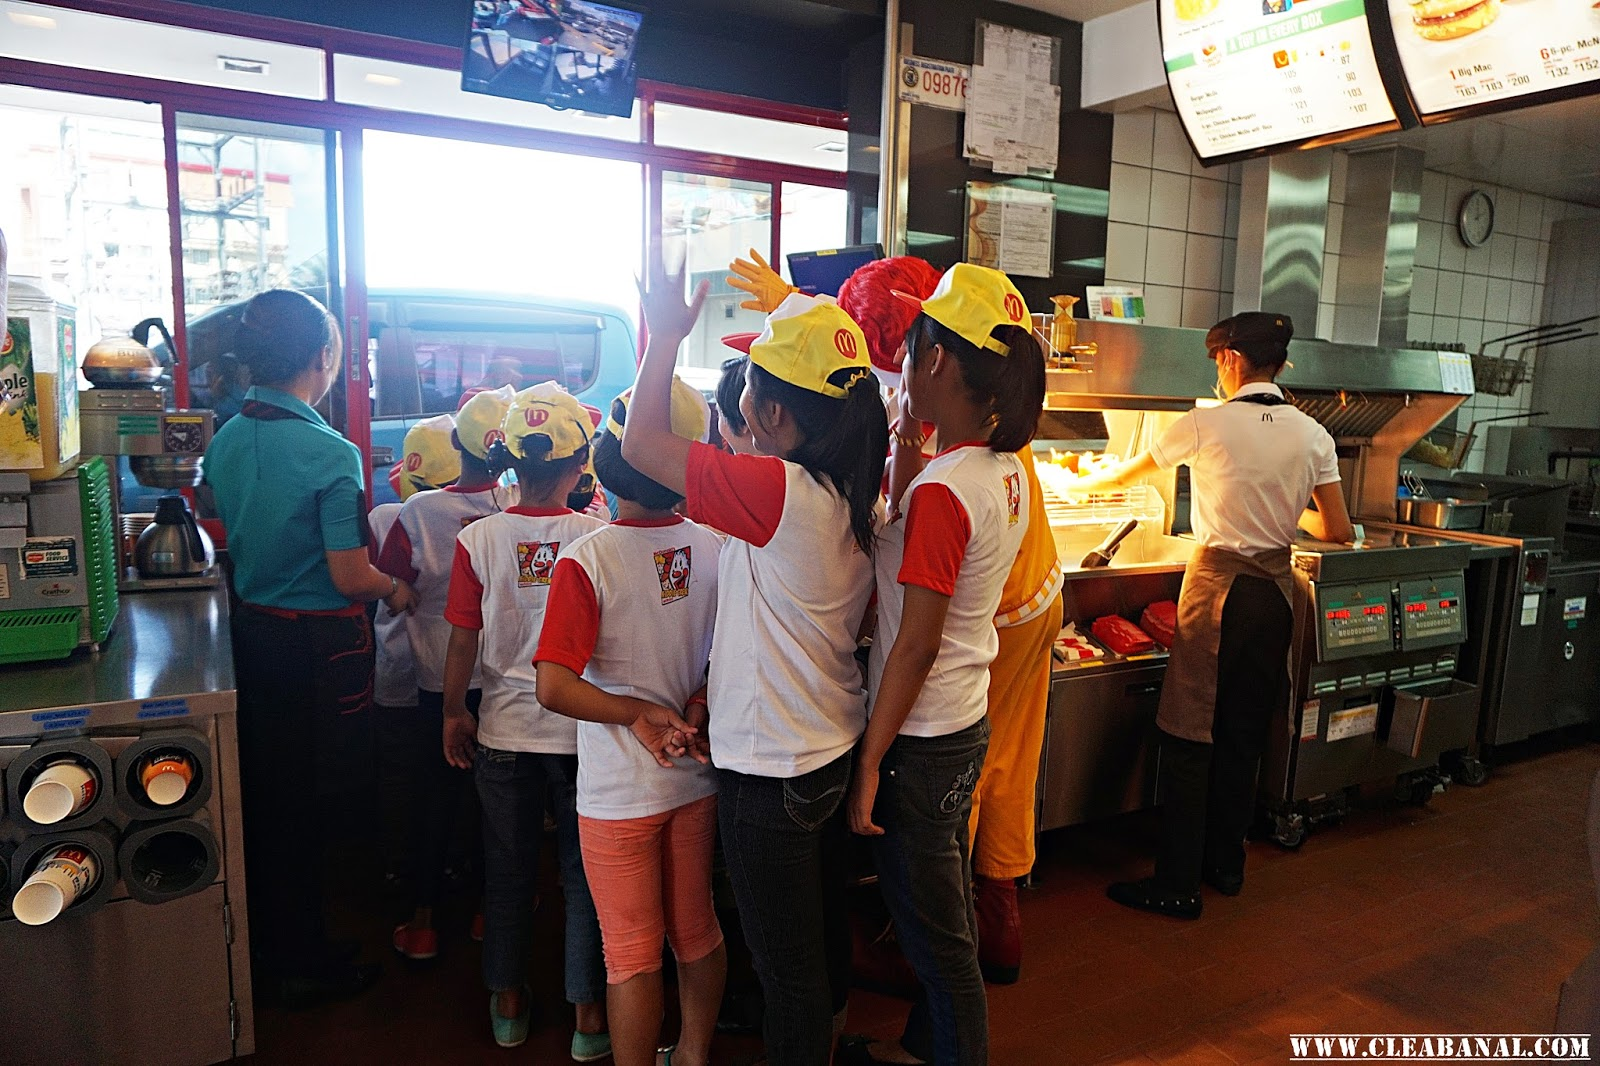 mcdonald s kiddie crew workshop 2016 clea banal customers and drive thru like a real crew member discipline teamwork responsibility sharing and hardwork are some of the values they will learn